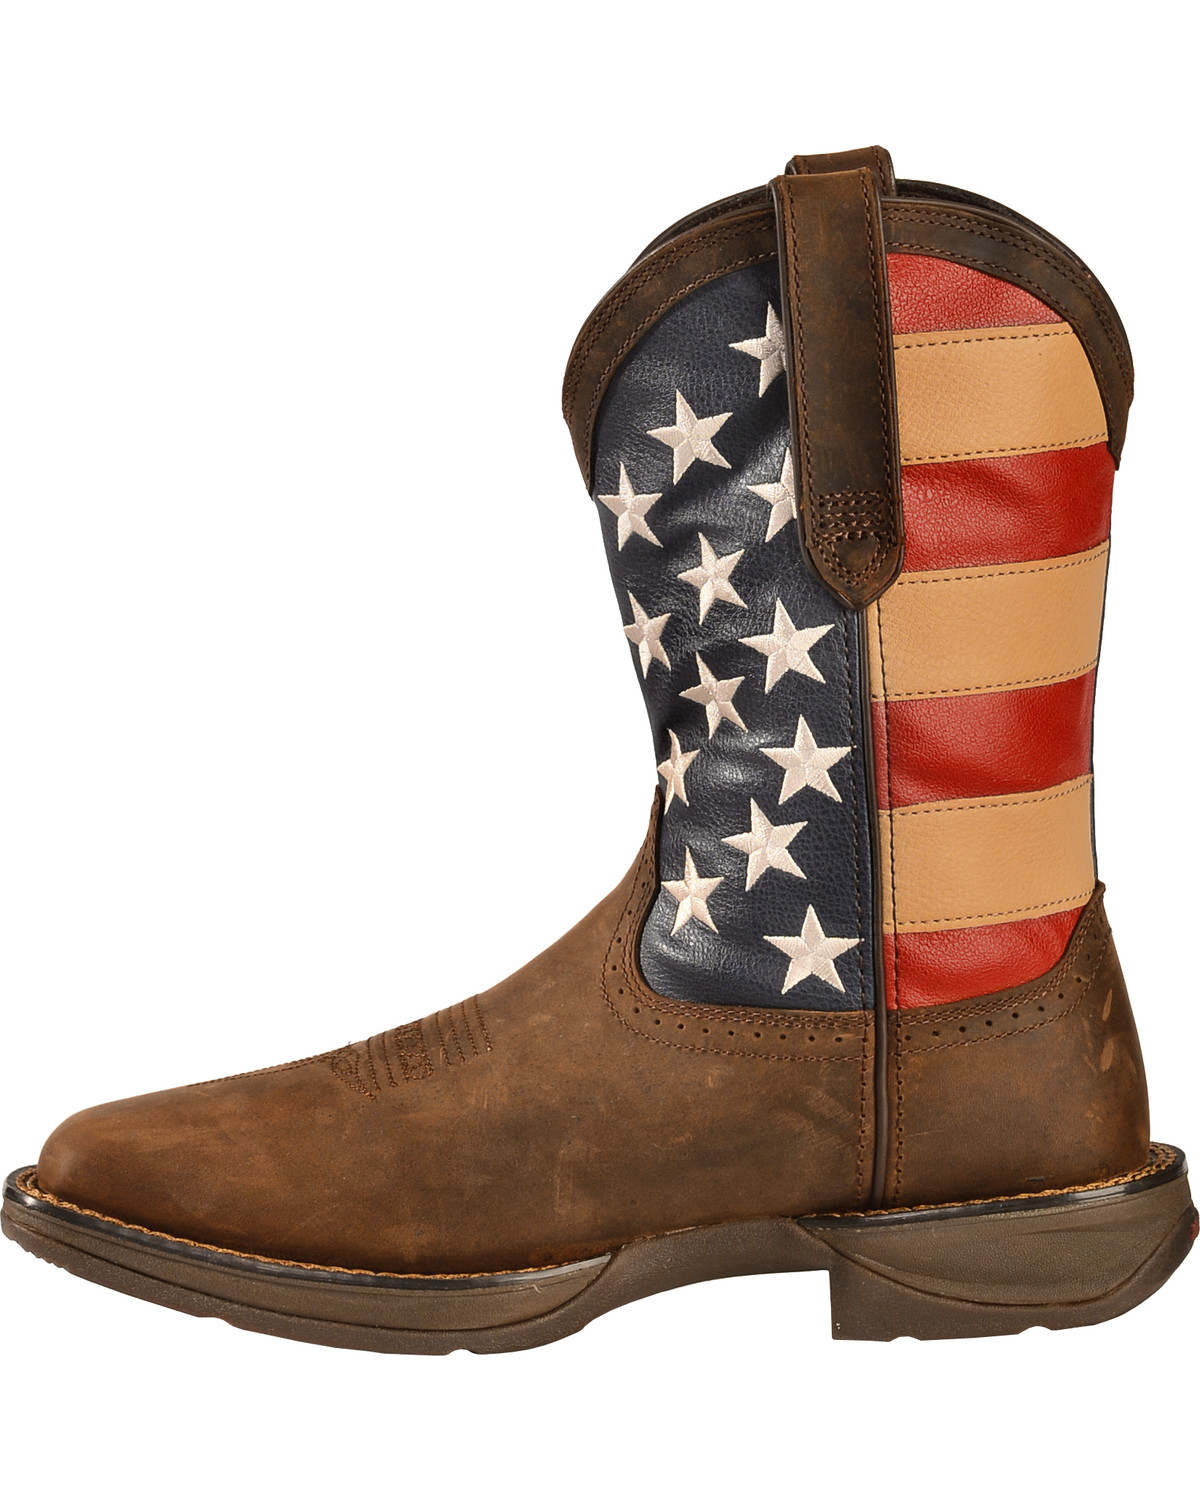 Durango Men's Patriotic Square Toe Western Boots